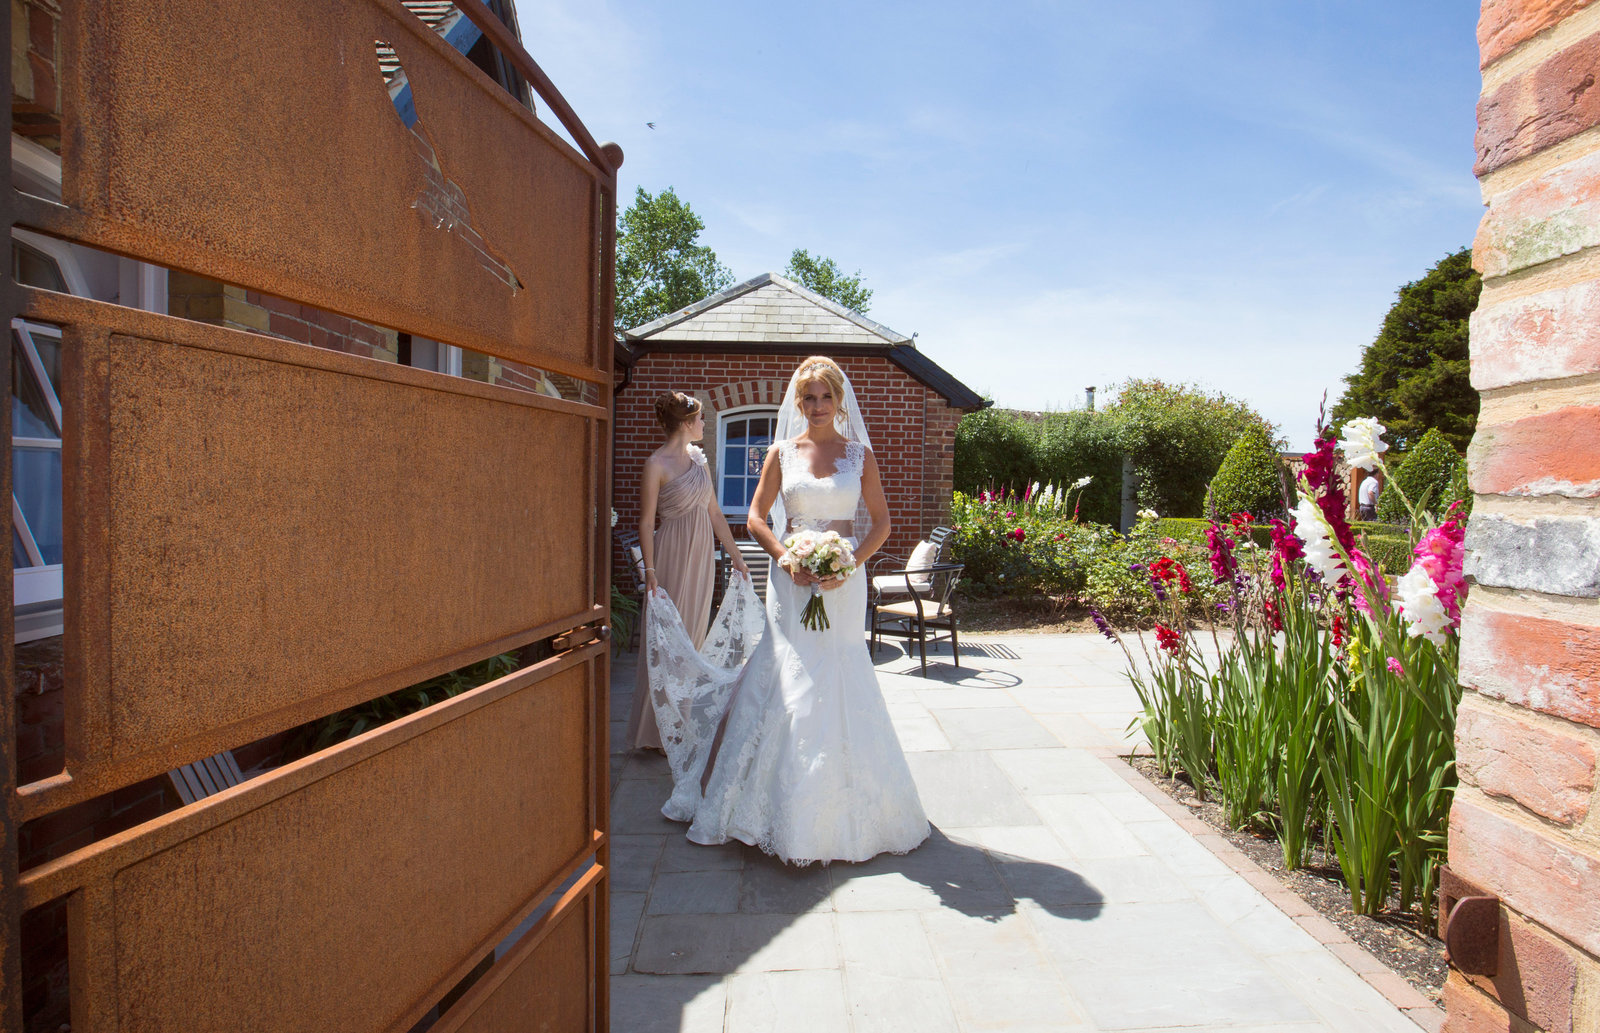 adorlee-0693-southend-barns-wedding-photographer-chichester-west-sussex